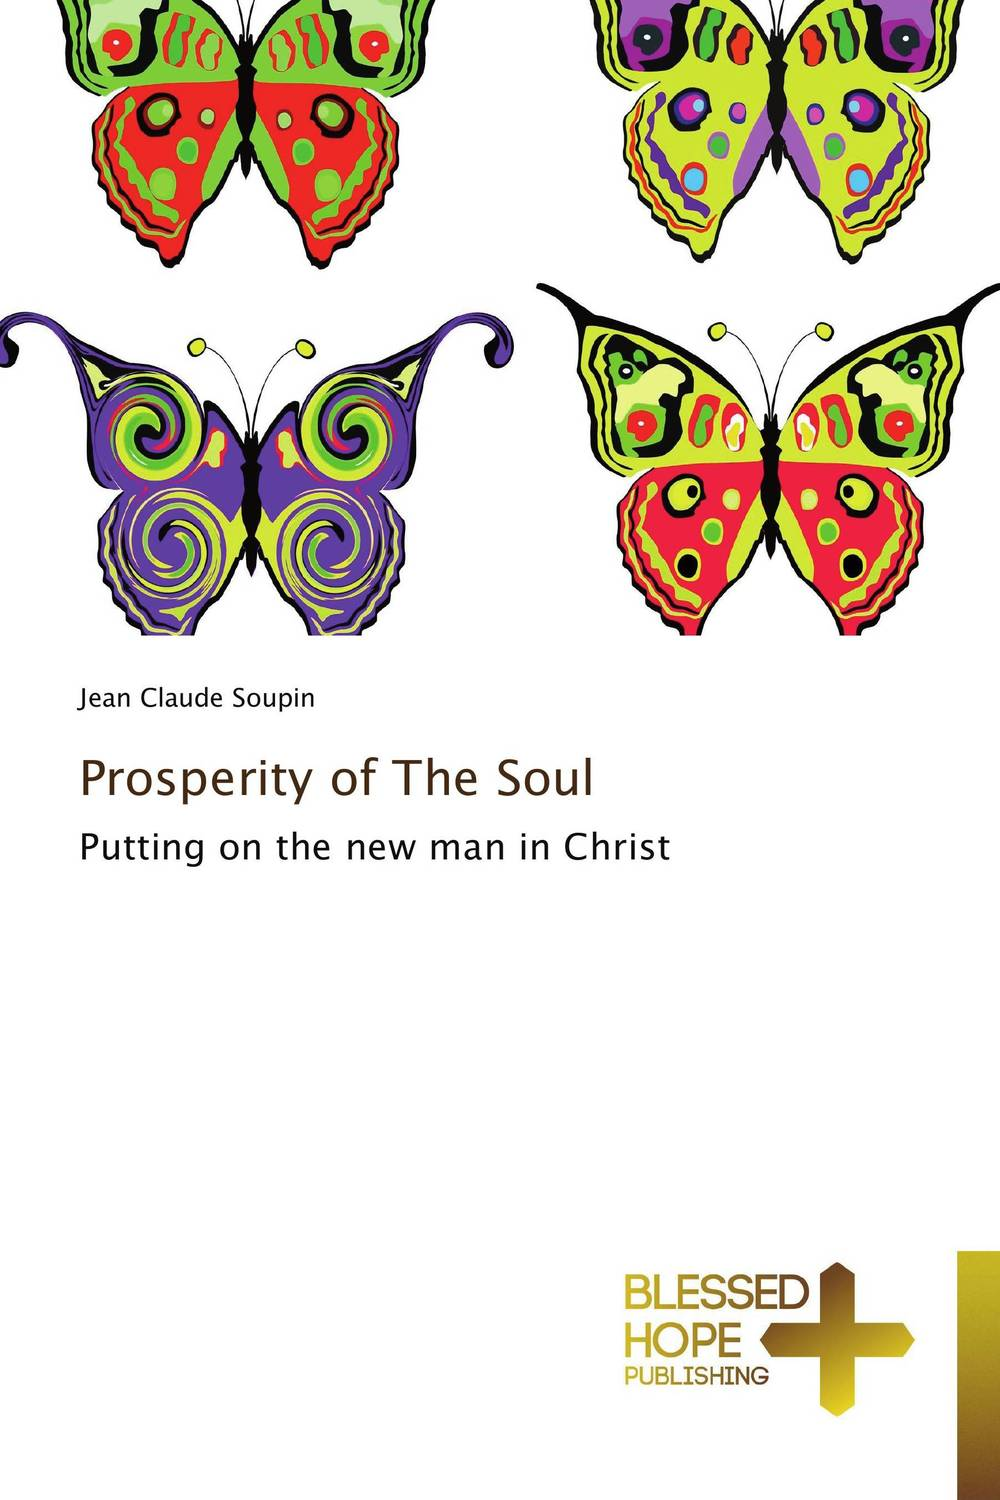 Prosperity of The Soul rollason j barack obama the story of one man s journey to the white house level 2 сd